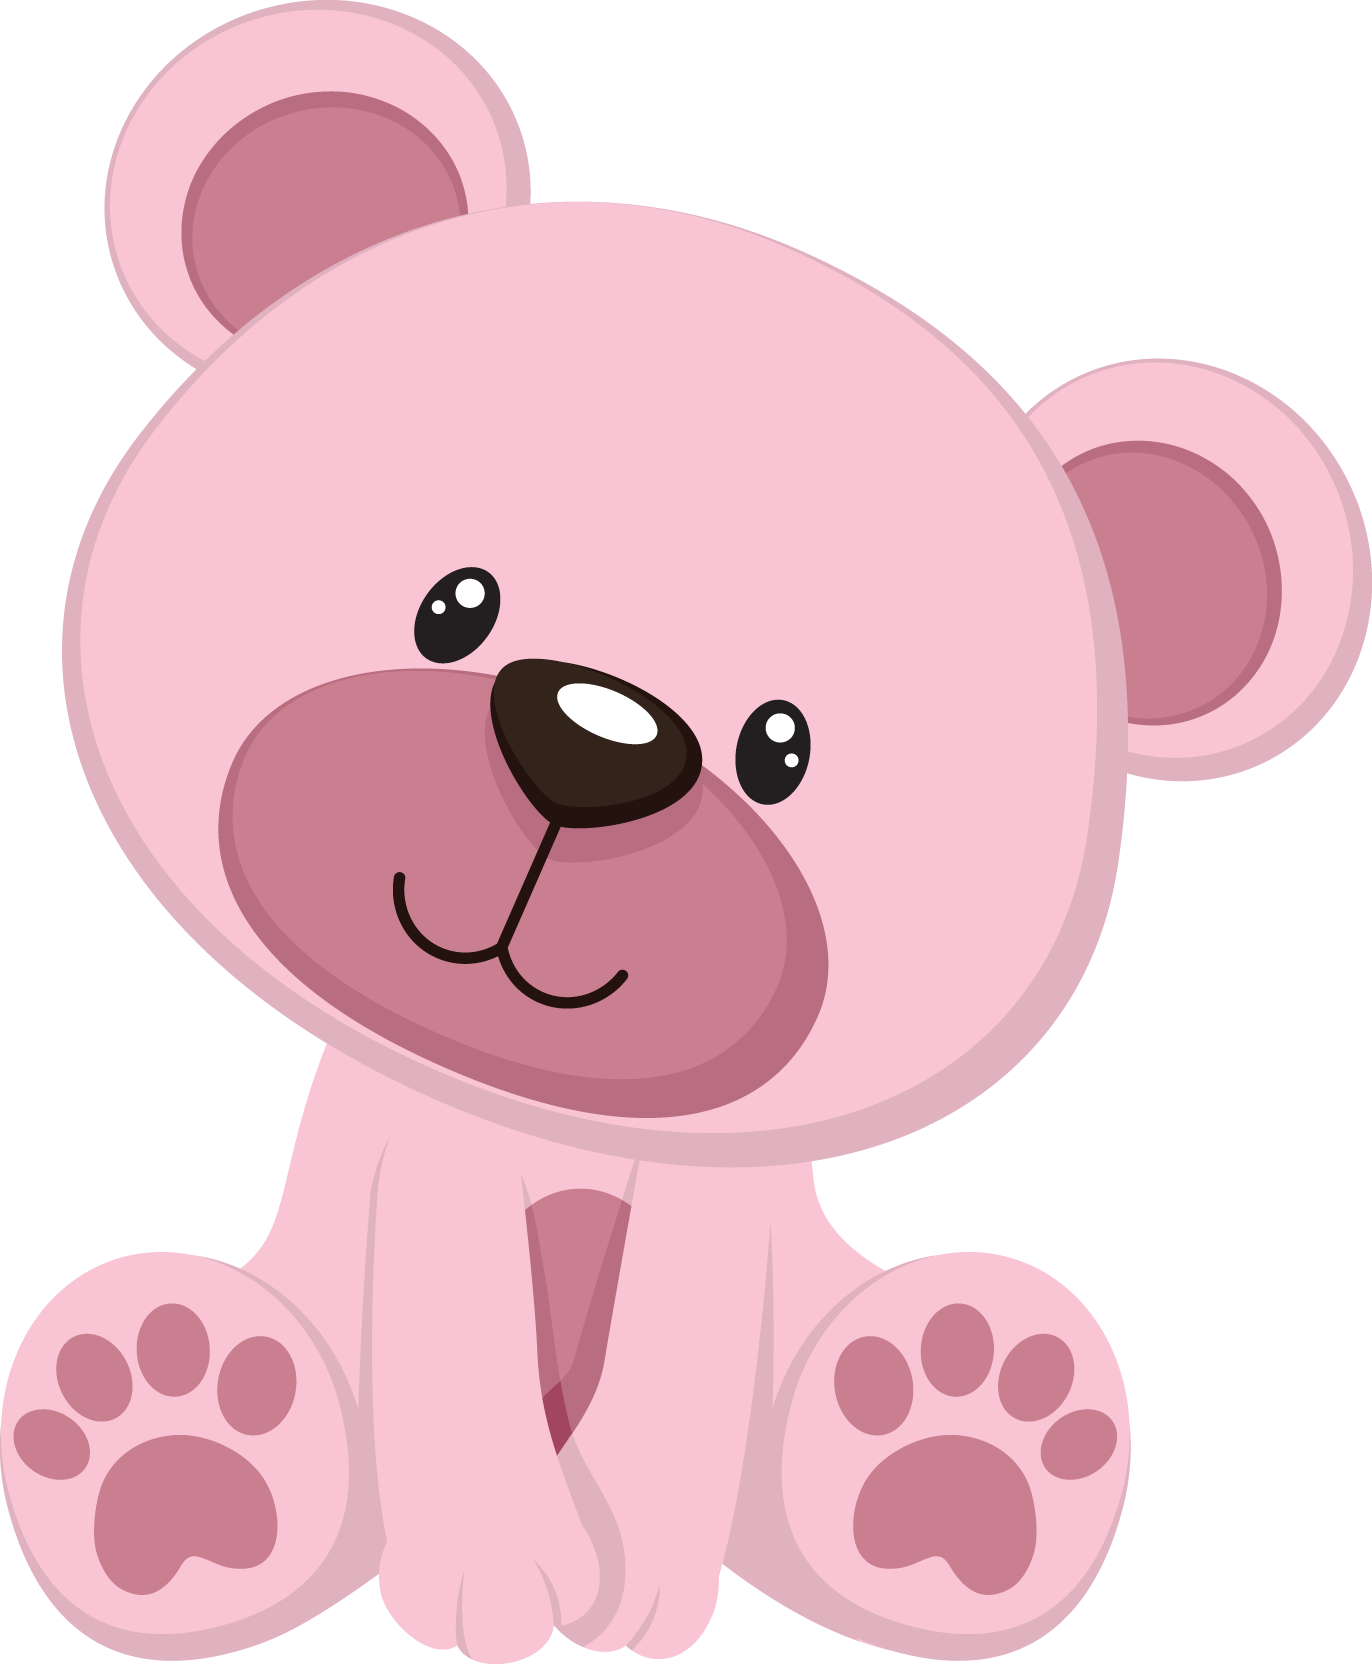 Pink Teddy Bear Baby Shower: Baby Bear Png - Pesquisa Google